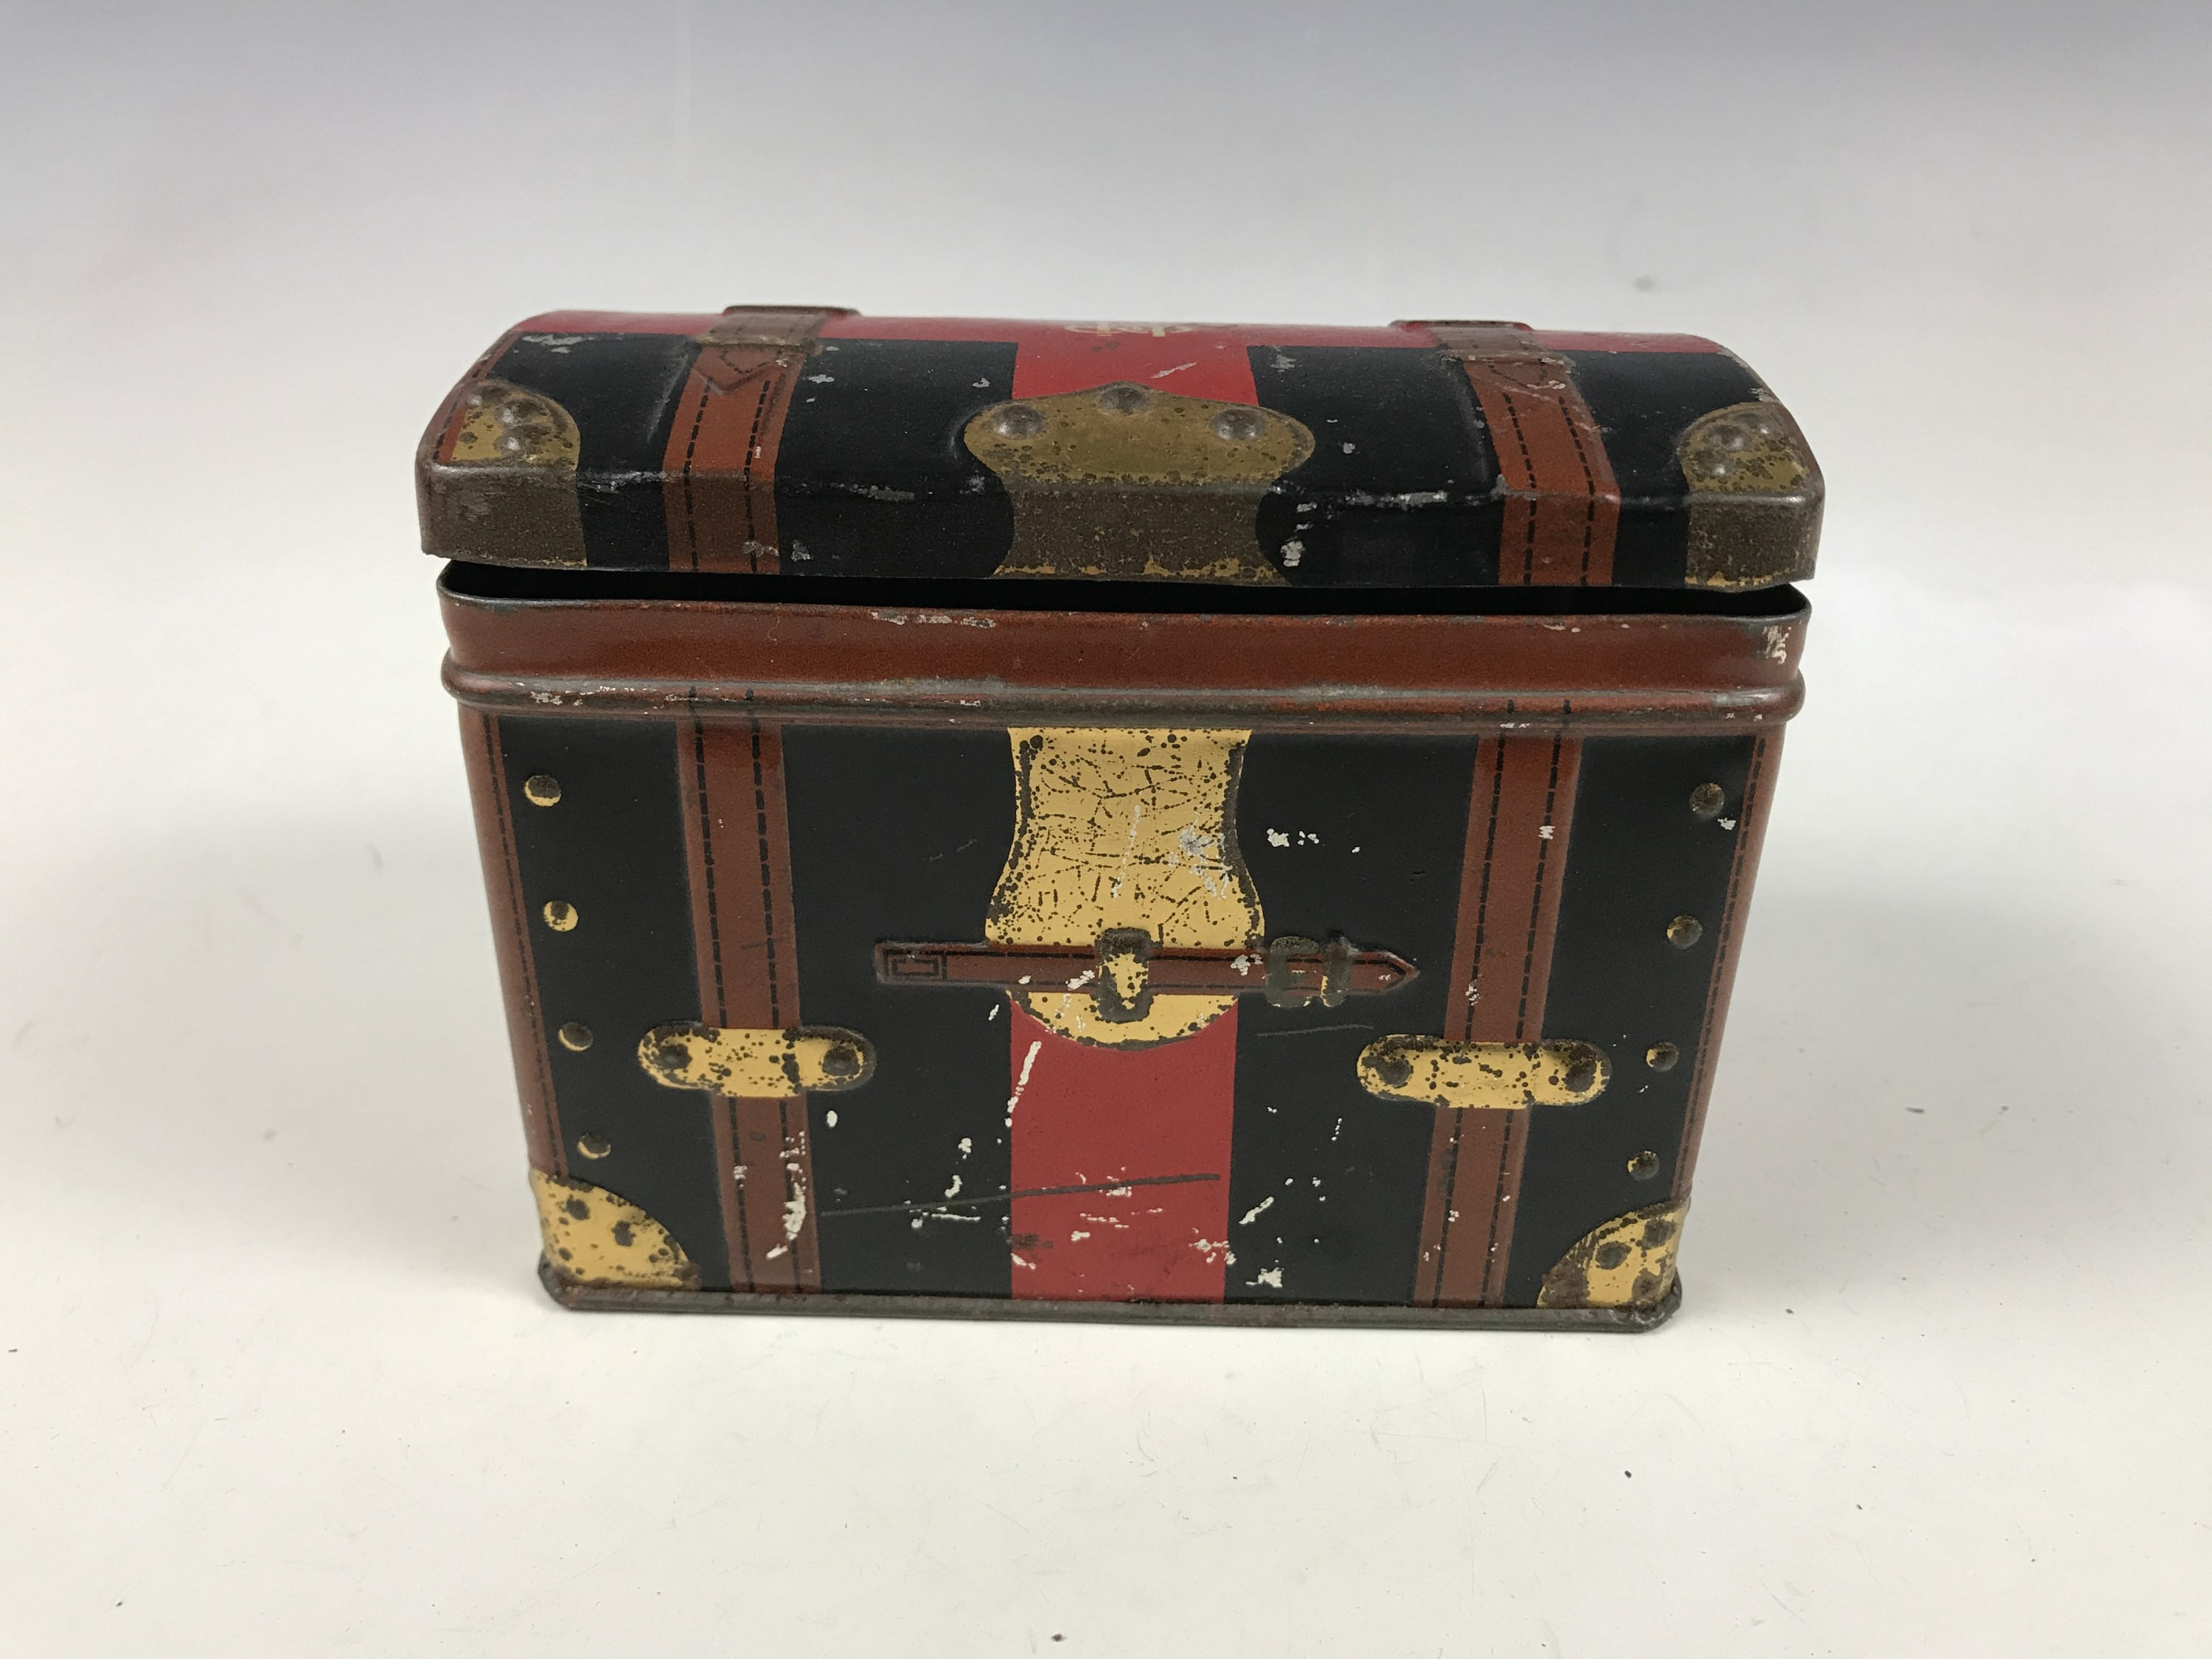 Lot 20 - An early 20th Century Hudson Scott / L&NW Railway novelty tinplate box modelled as a travelling